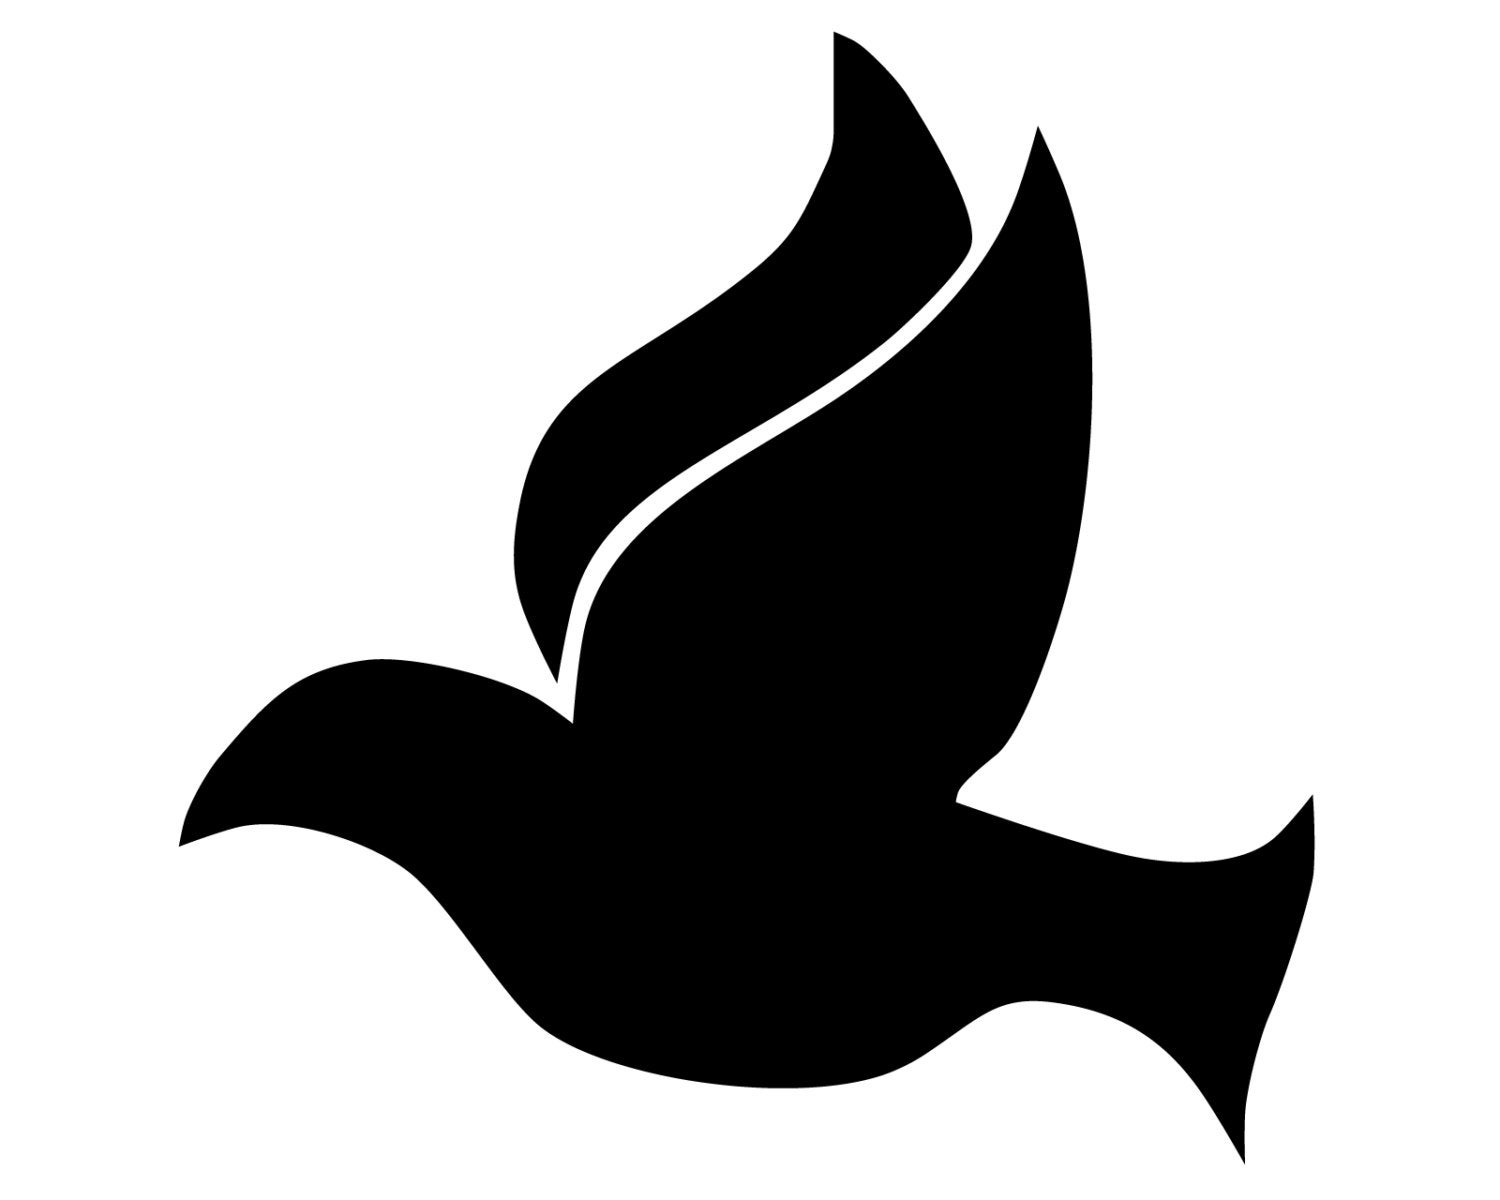 Christian Peace Dove Decal Dove Symbol Bumper Sticker Etsy